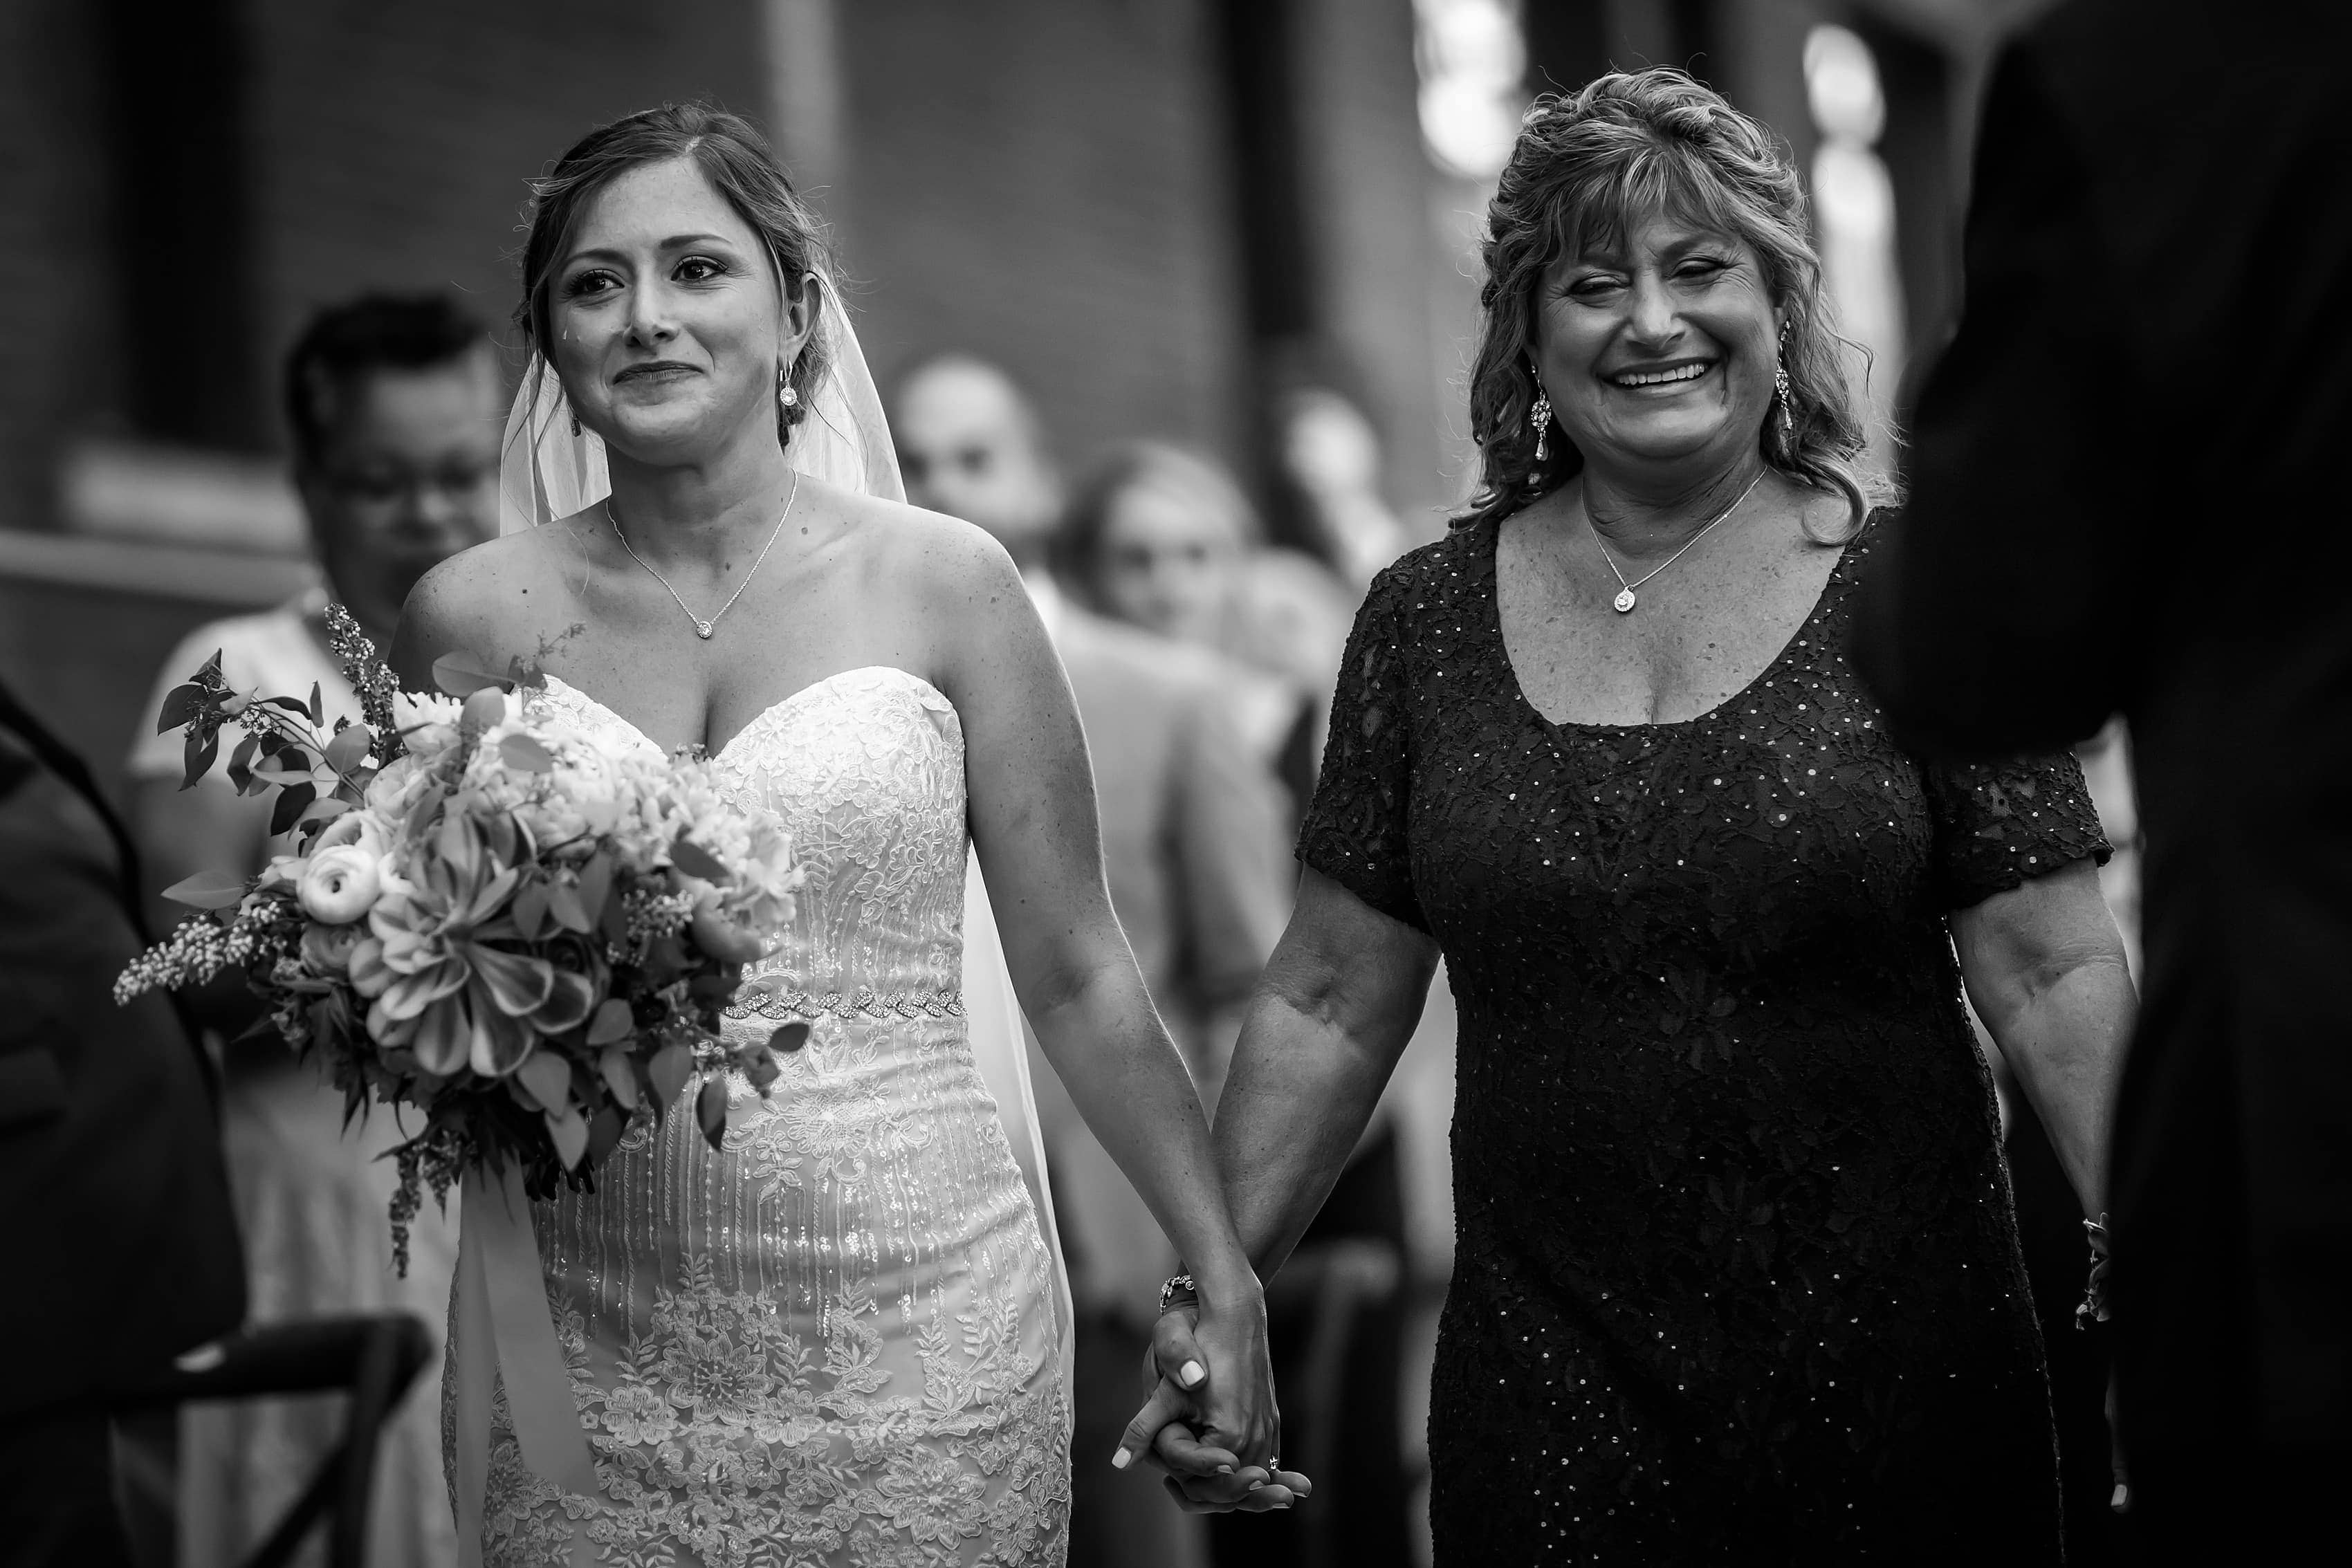 bride walks down the aisle with her mother during wedding ceremony at Bridgeport Art Center Sculpture Garden in Chicago